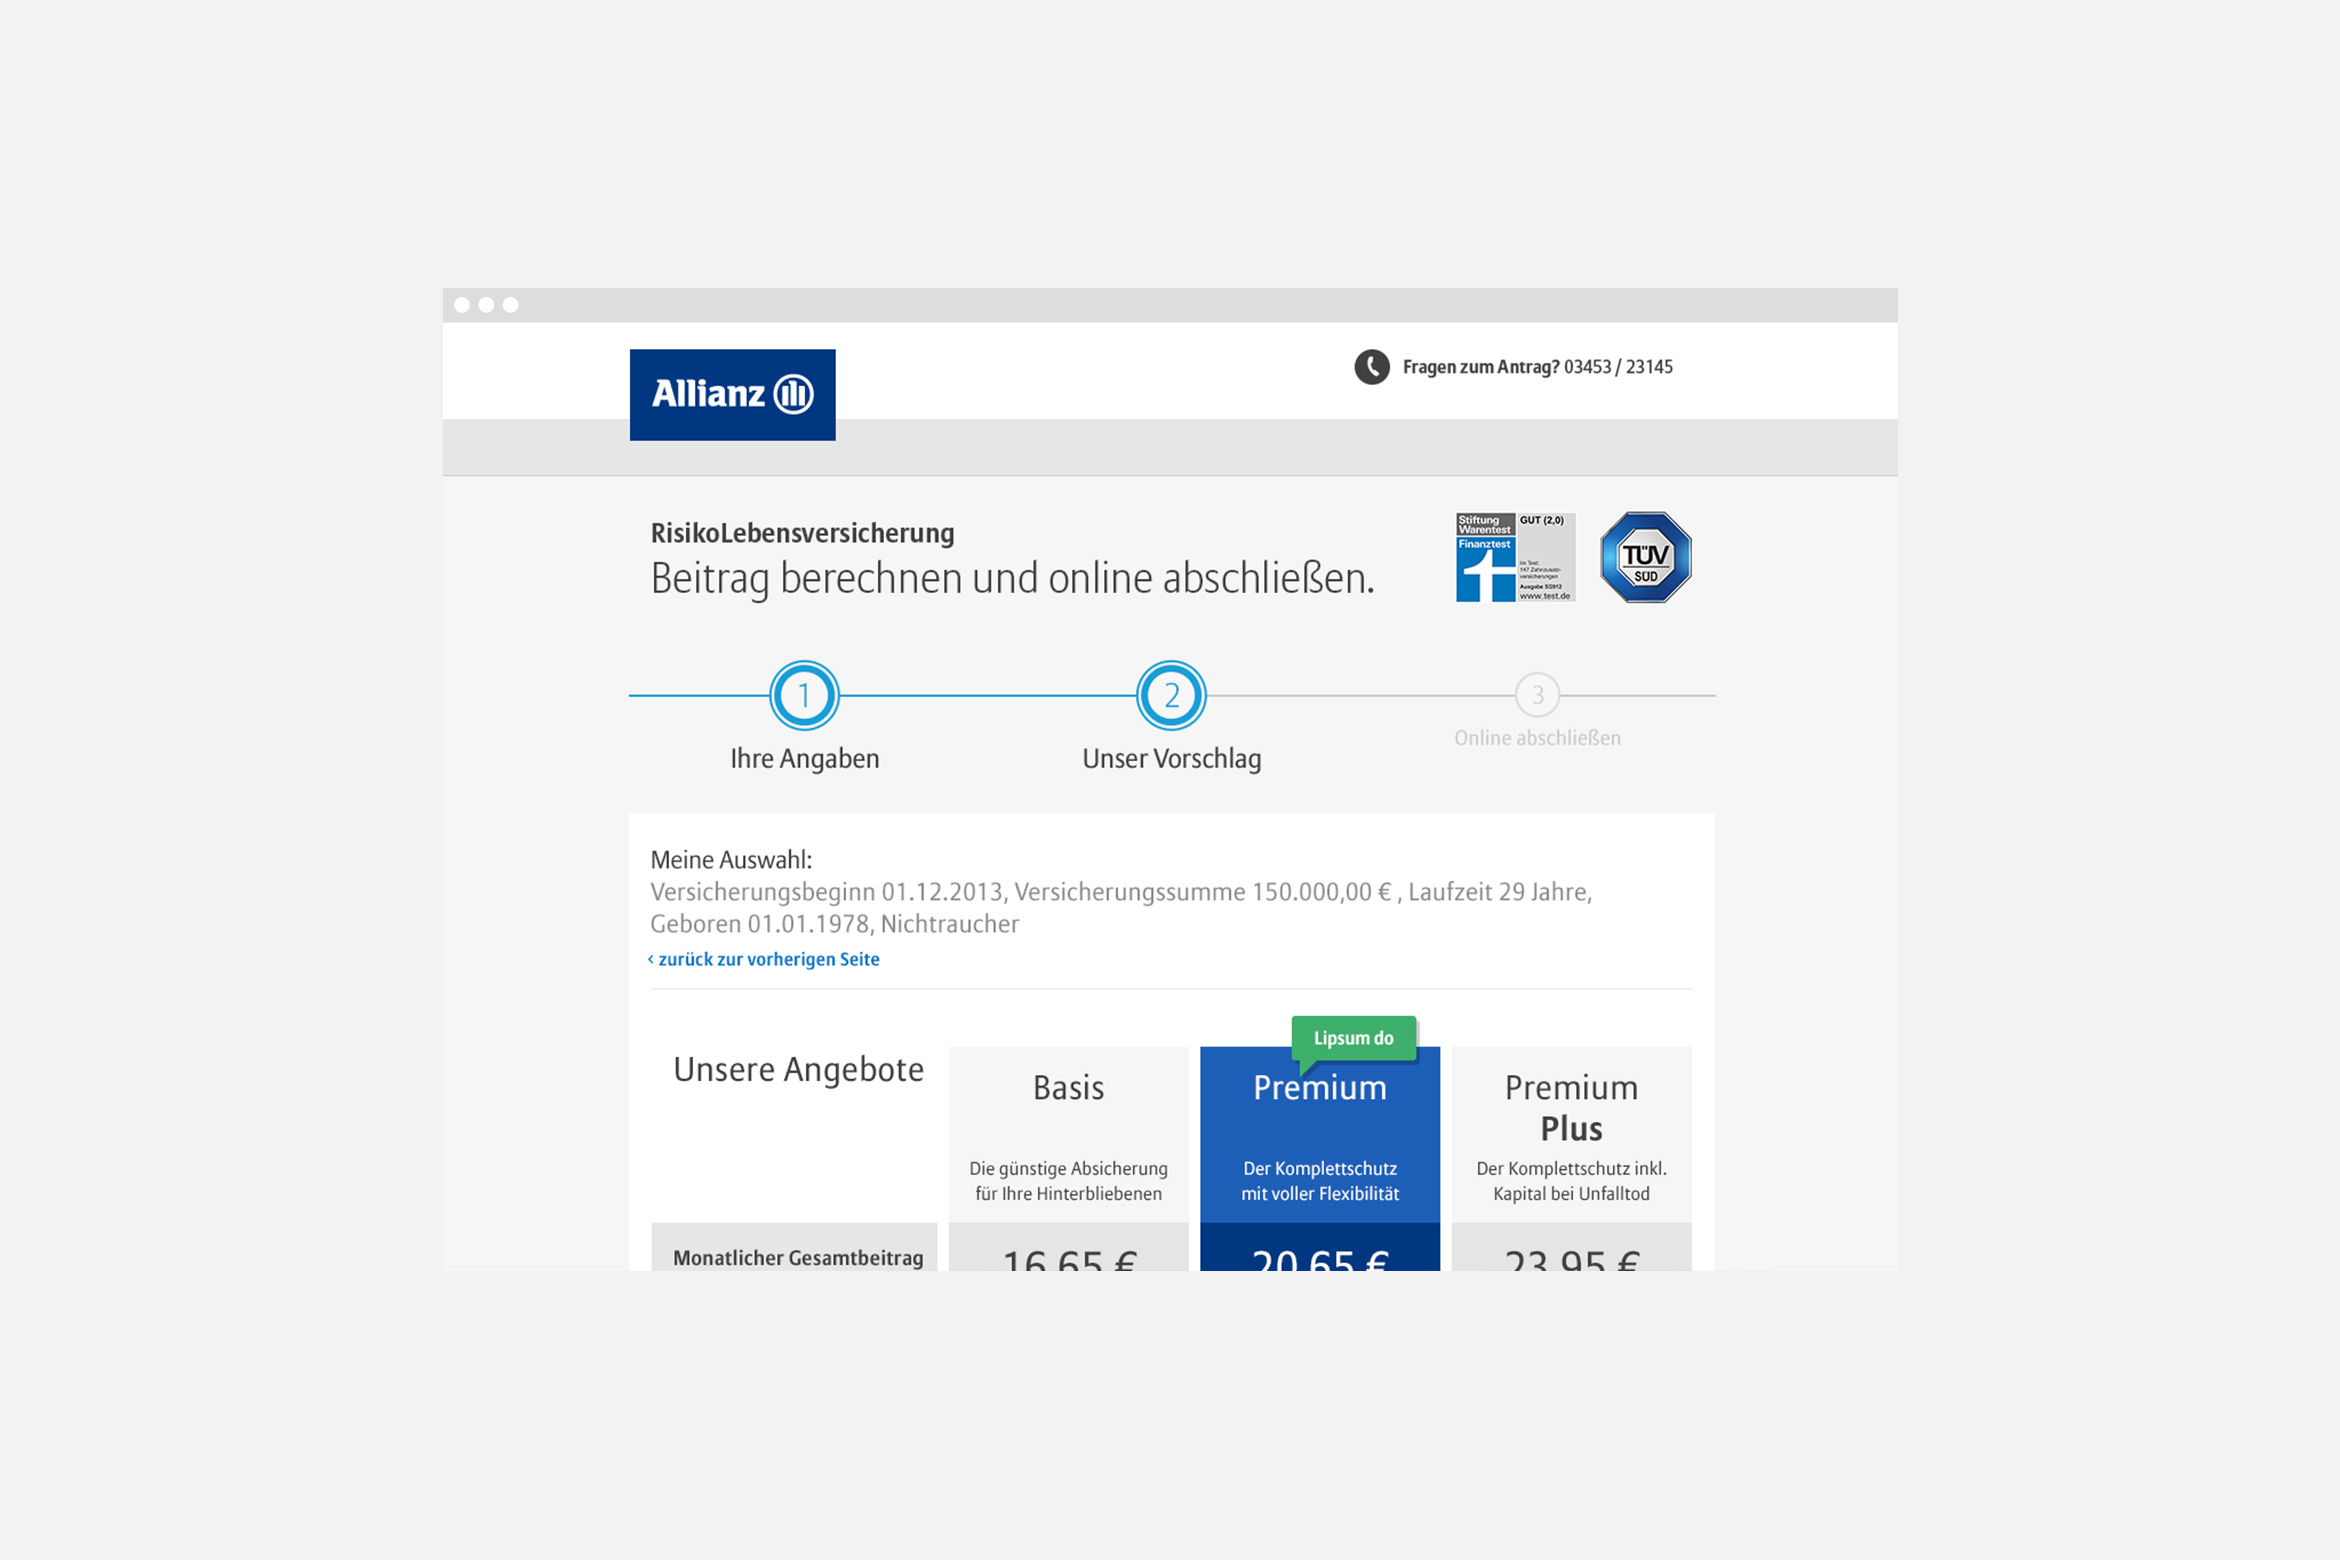 Allianz Risikolebensversicherung Website